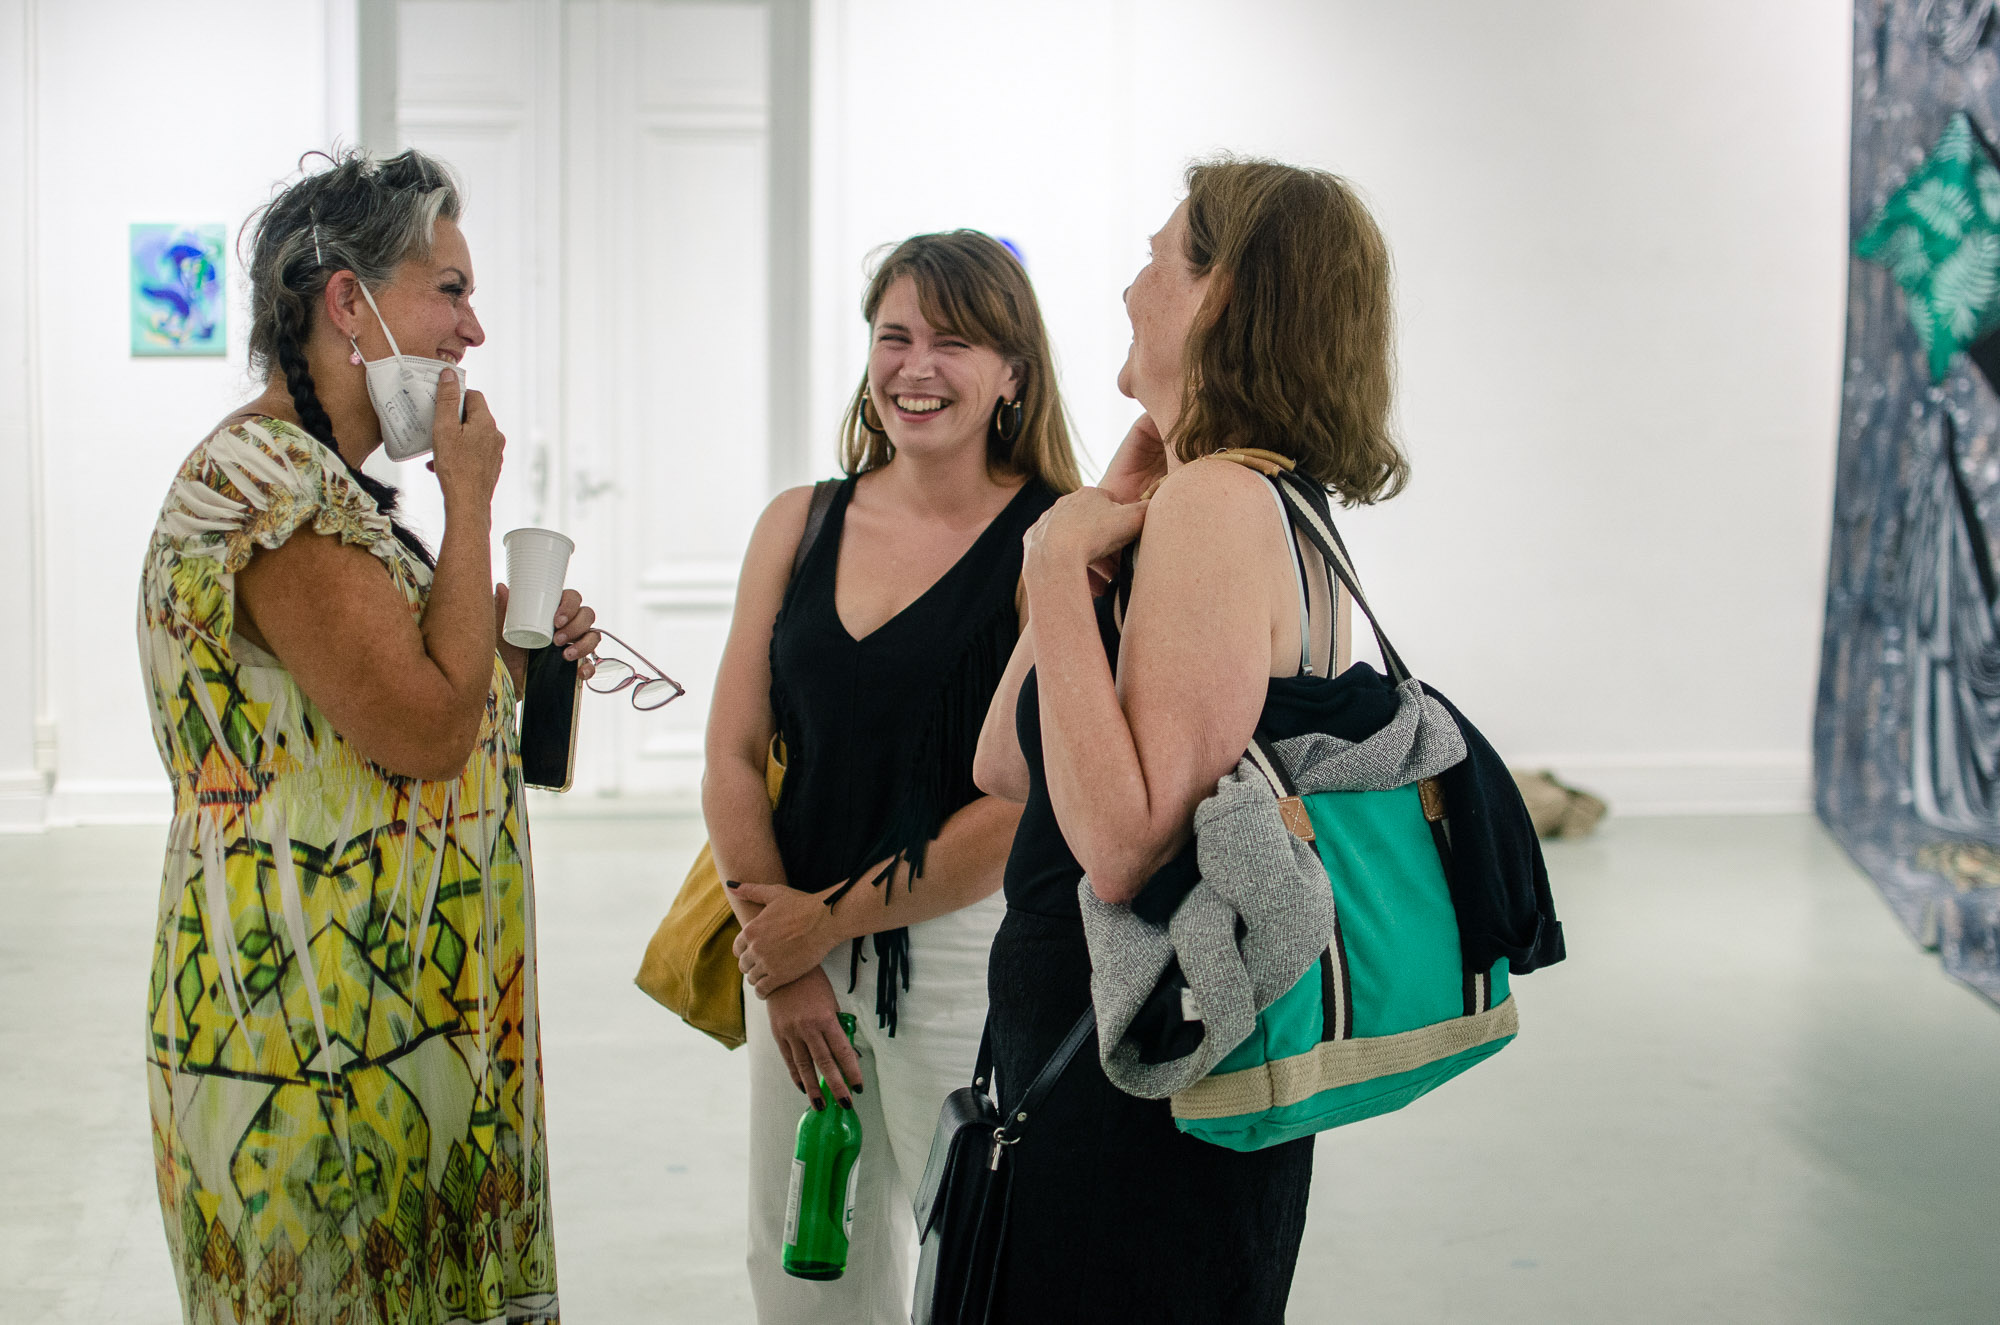 PKRD-48-Airy-Democratic-Spirituality-vernissage-PK-at-Alte-Handlesschule-20.08.21-Fanni-Papp-for-PK-30